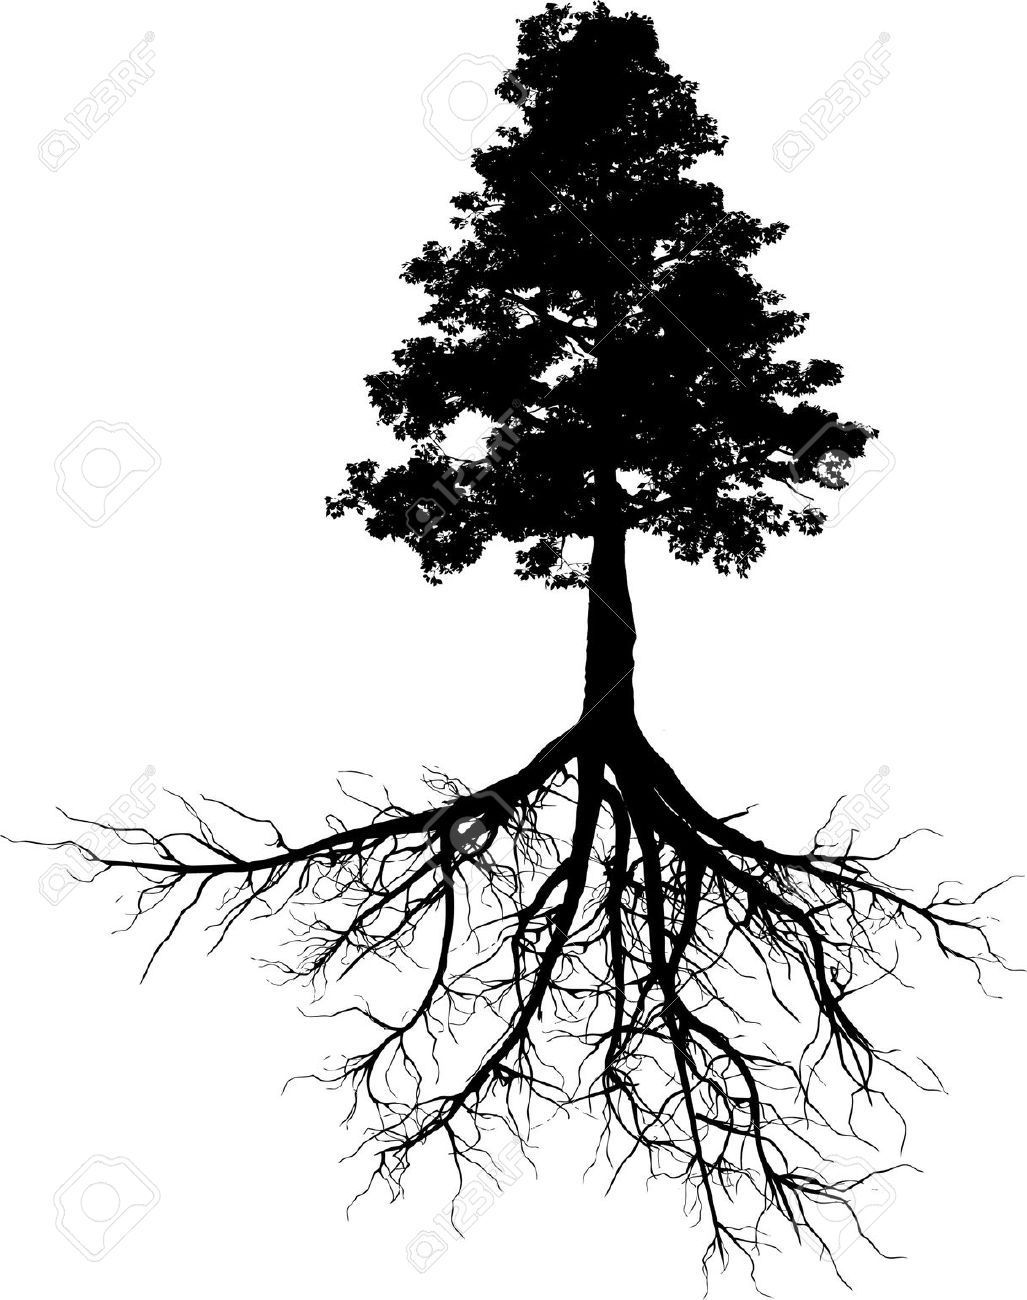 Graceful Septic Systems Tree Outline Roots Google Search Tree Outline Roots Google Search Animation Pine Tree Roots Damage Pine Tree Roots houzz-02 Pine Tree Roots